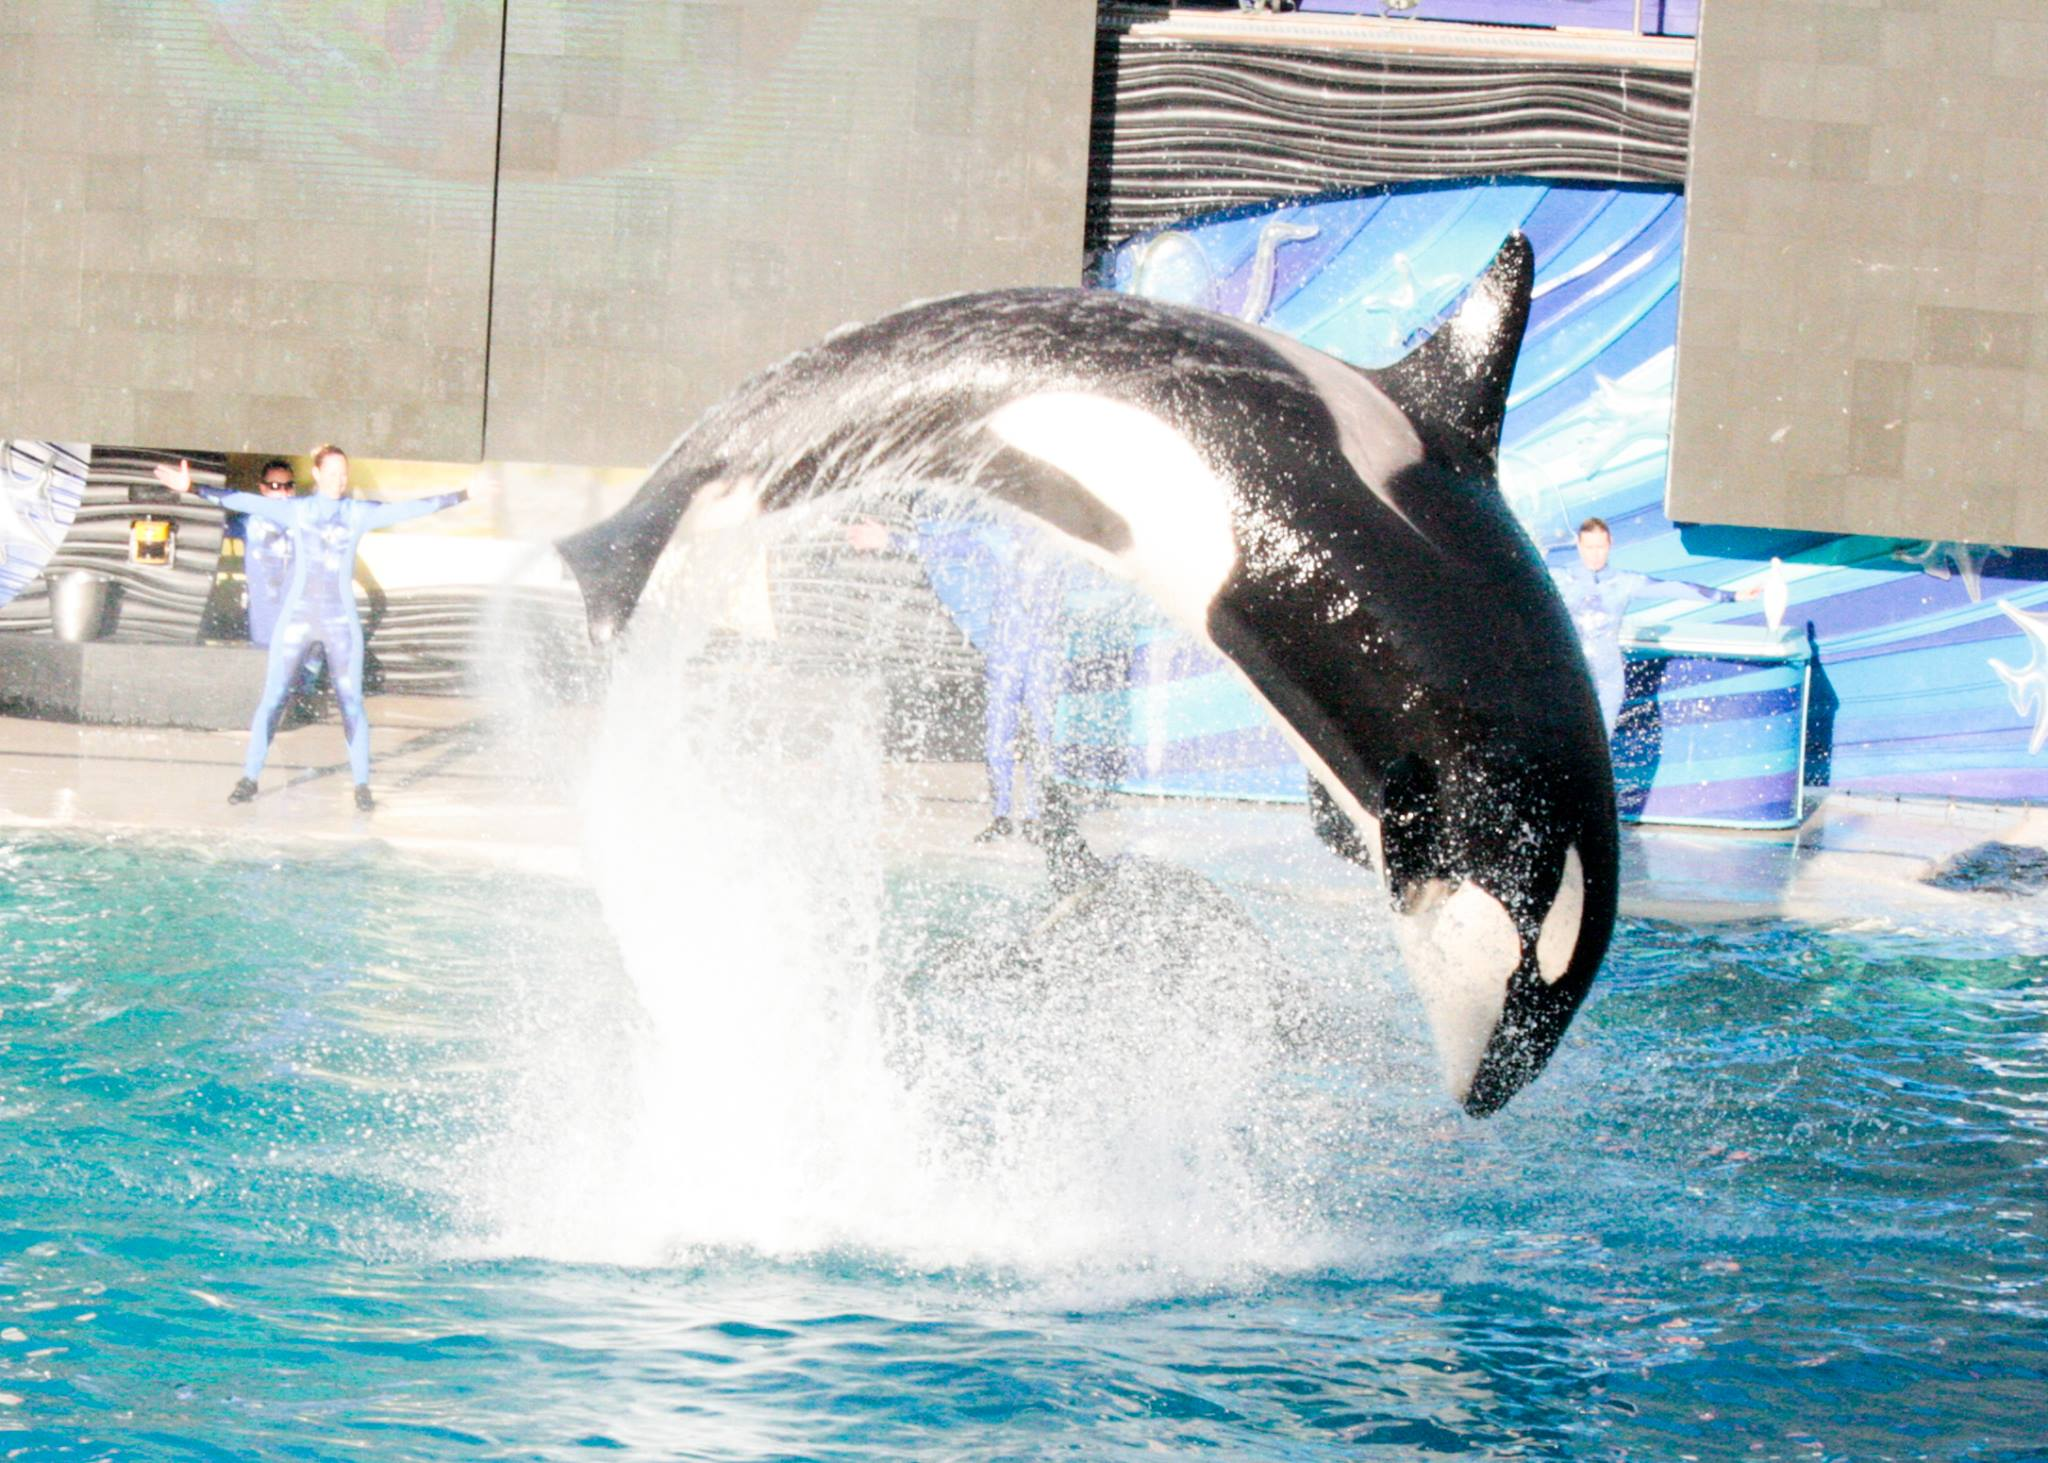 When you're making your list of active vacation ideas in Southern California, don't forget SeaWorld San Diego!